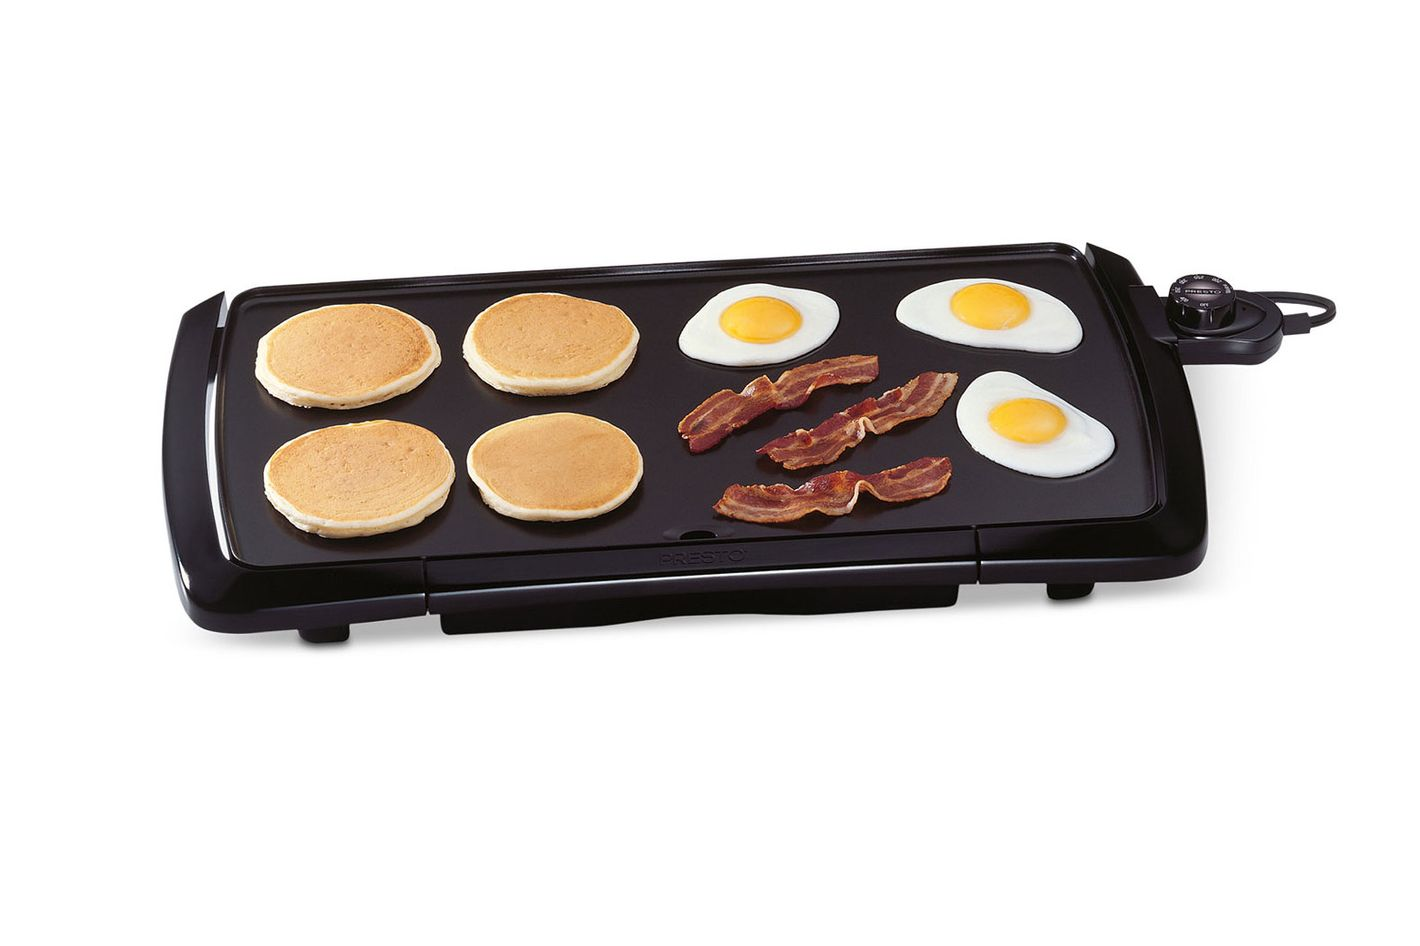 Presto Jumbo Cool-Touch Griddle